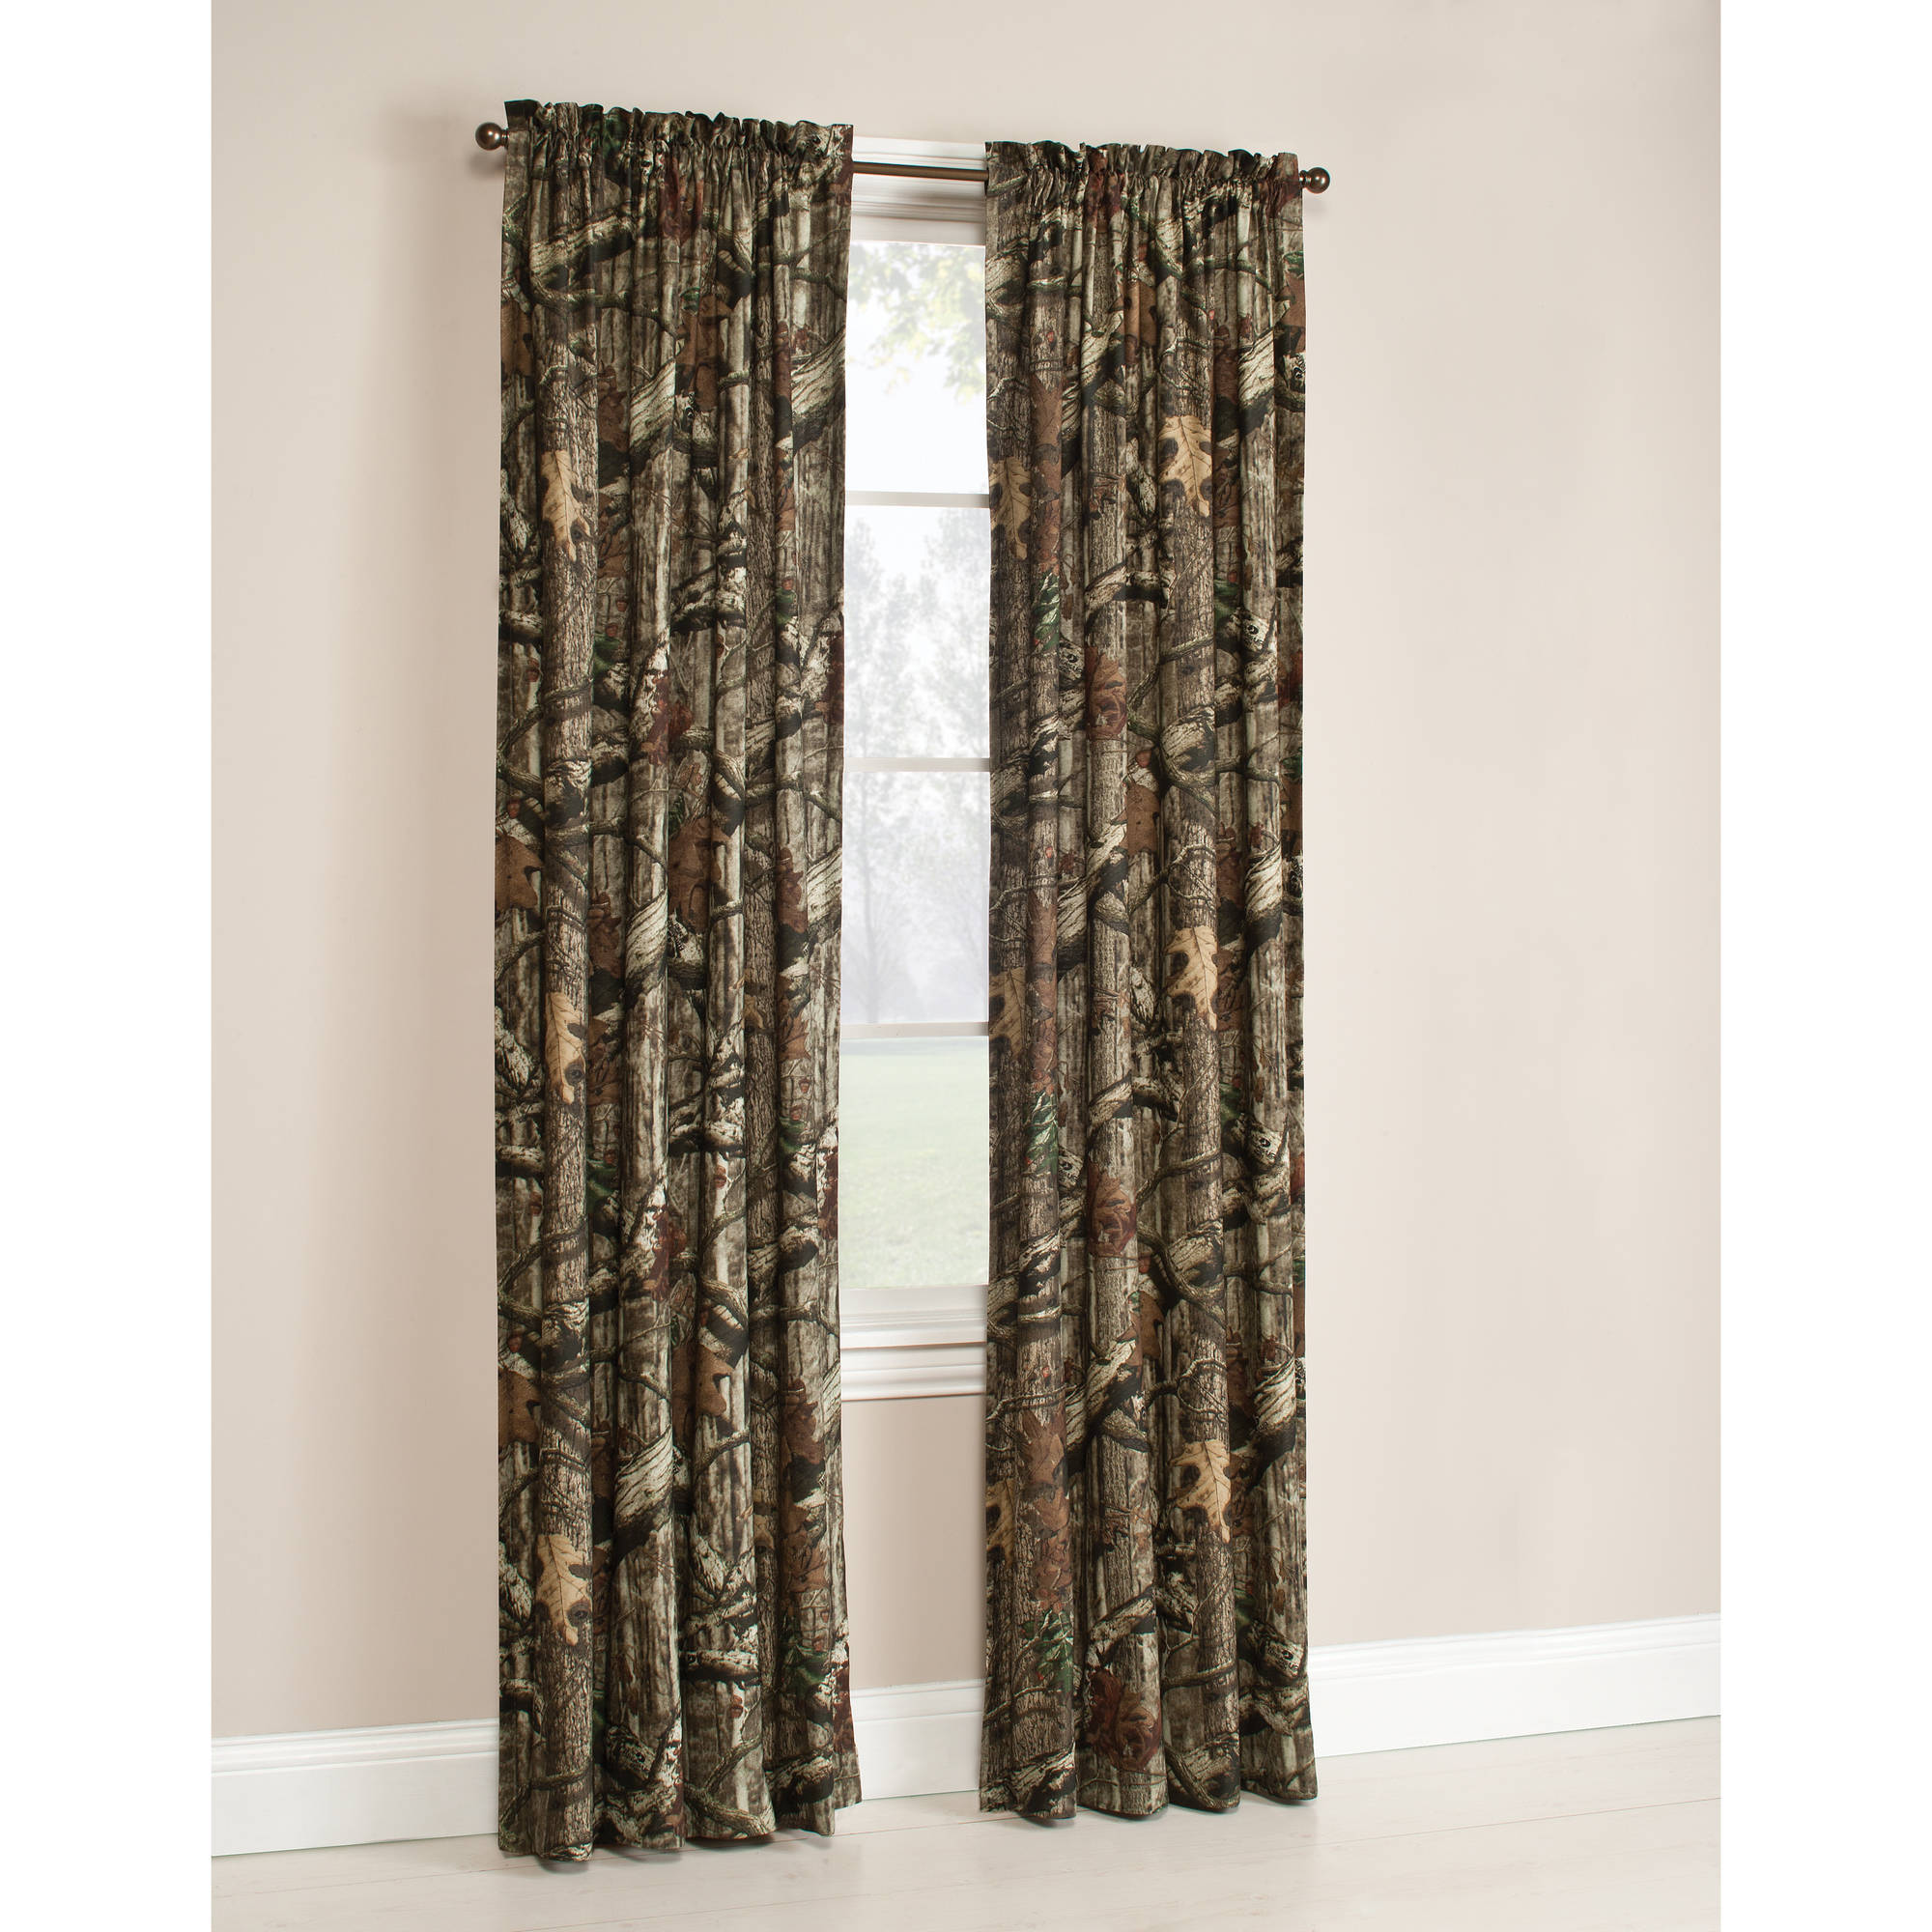 White curtain panels - Mossy Oak Break Up Infinity Camouflage Print Window Curtain Panels Walmart Com